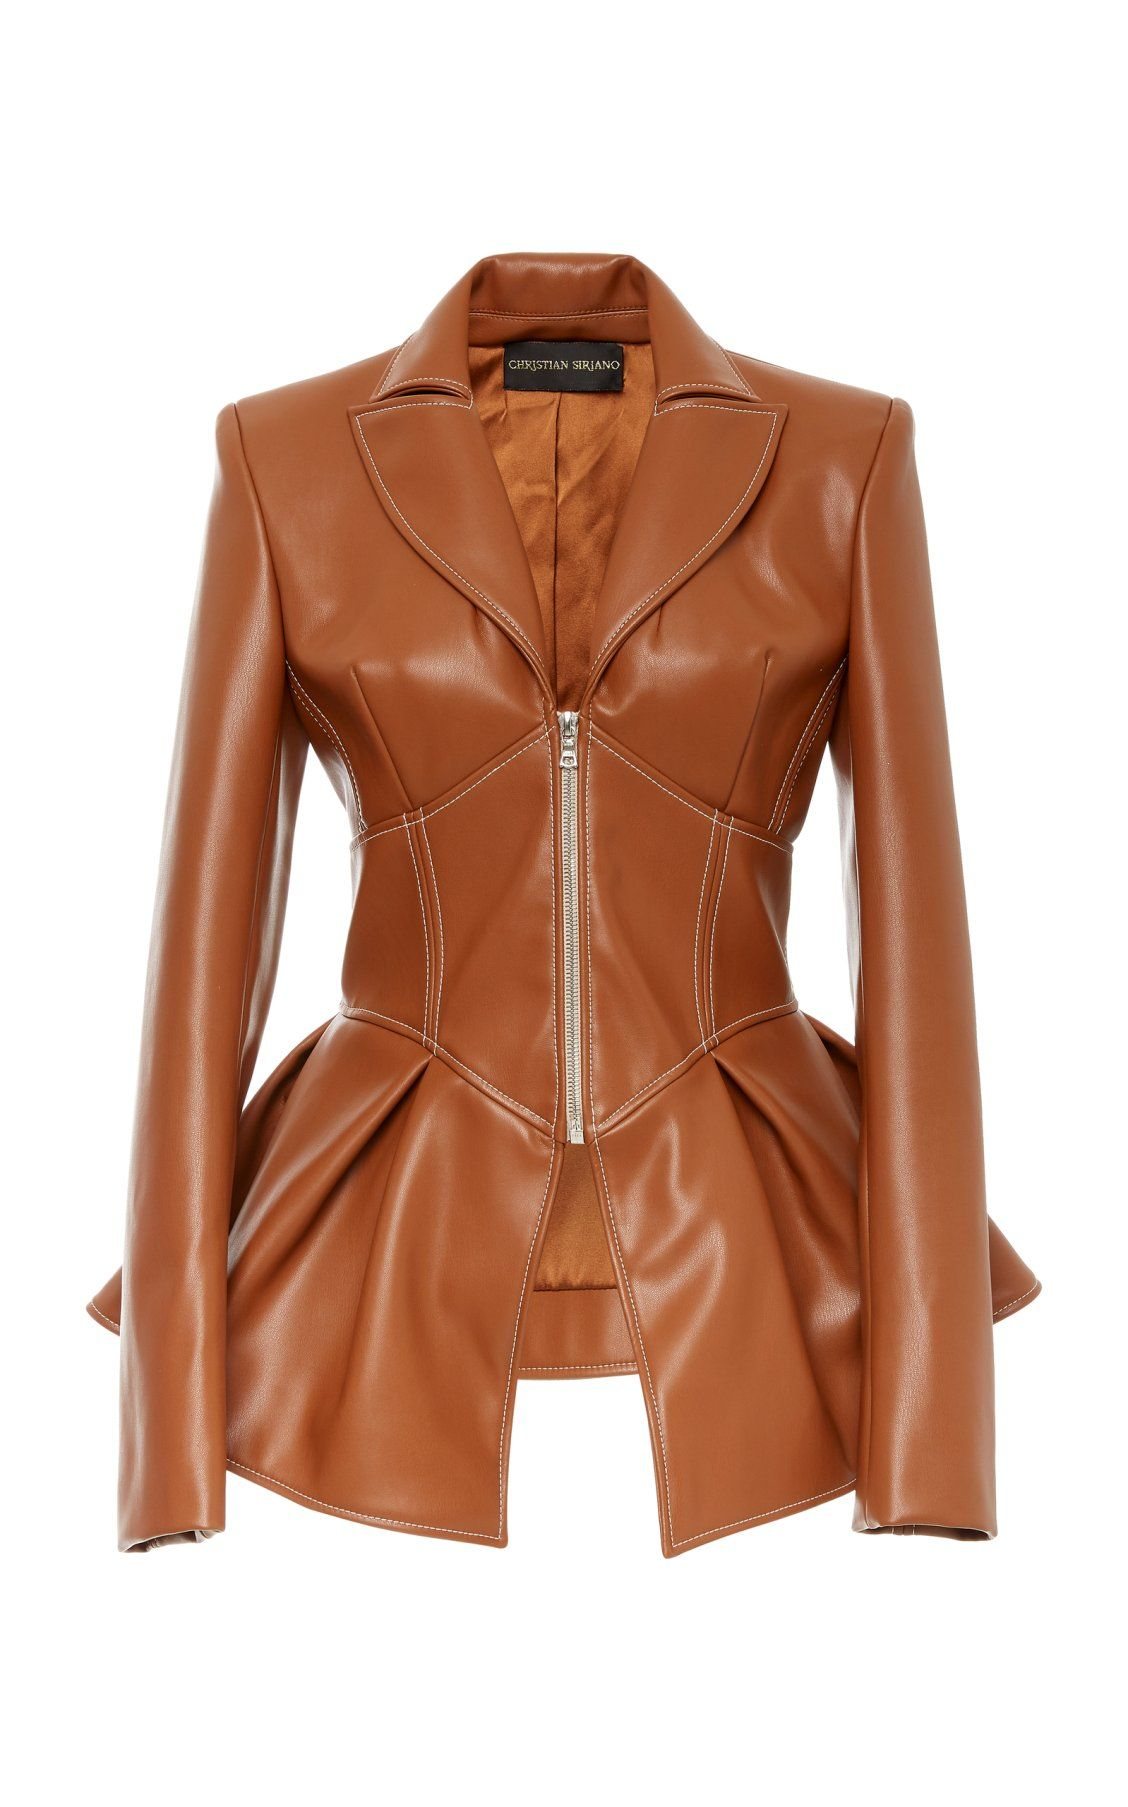 Faux Leather Corset Jacket By Christian Siriano Moda Operandi Leather Look Jackets Leather Corset Brown Faux Leather Jacket